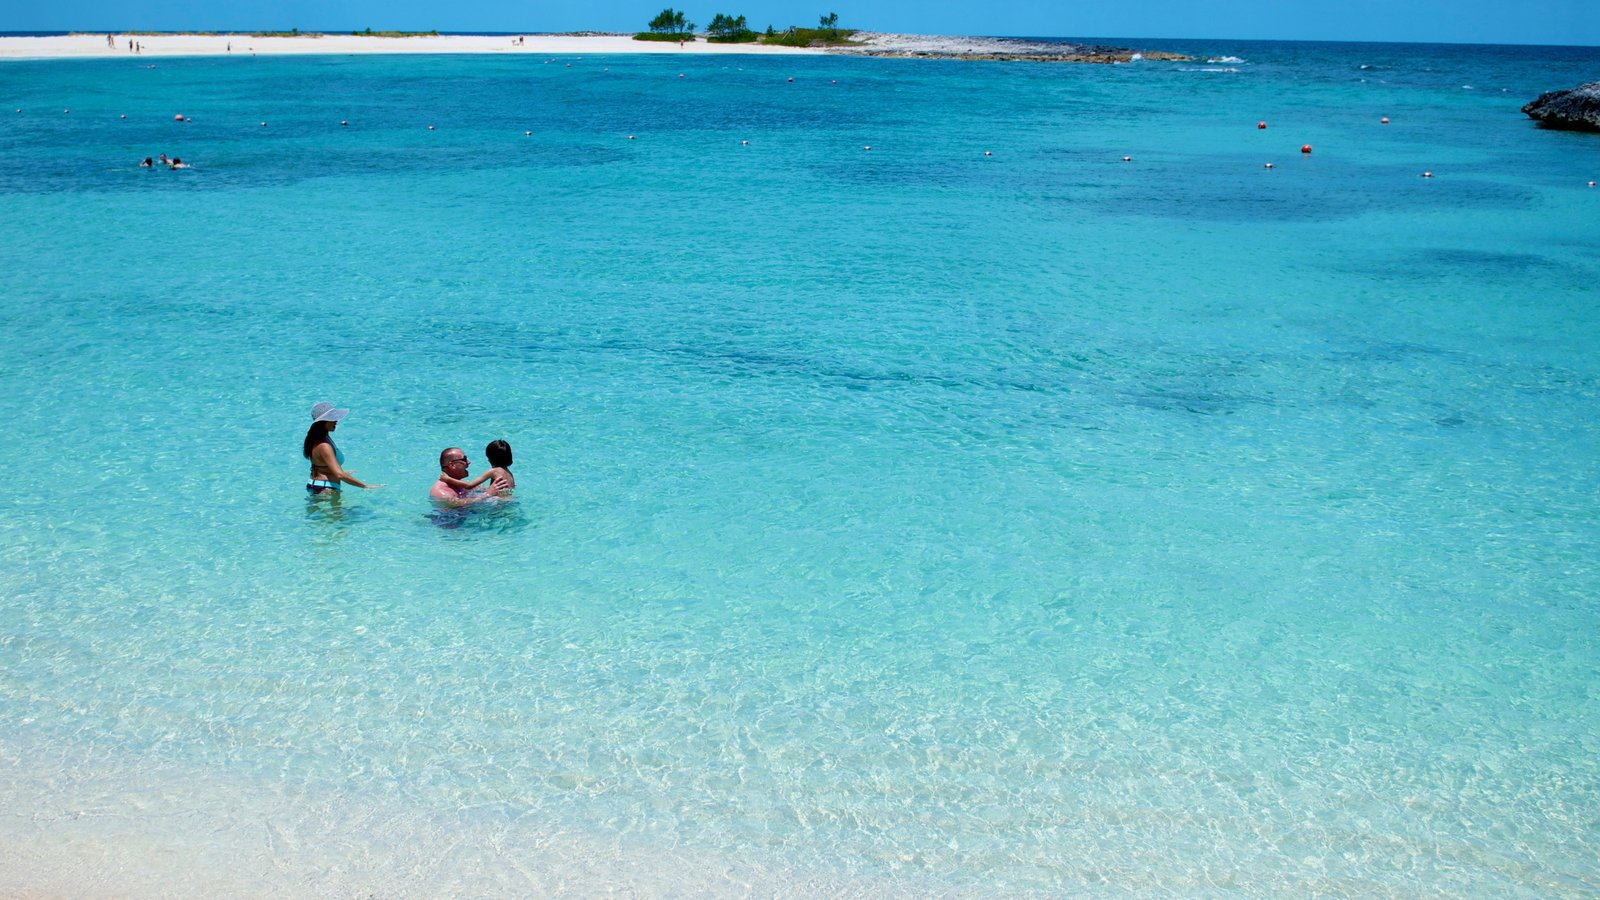 People Pictures: View Images of Caribbean